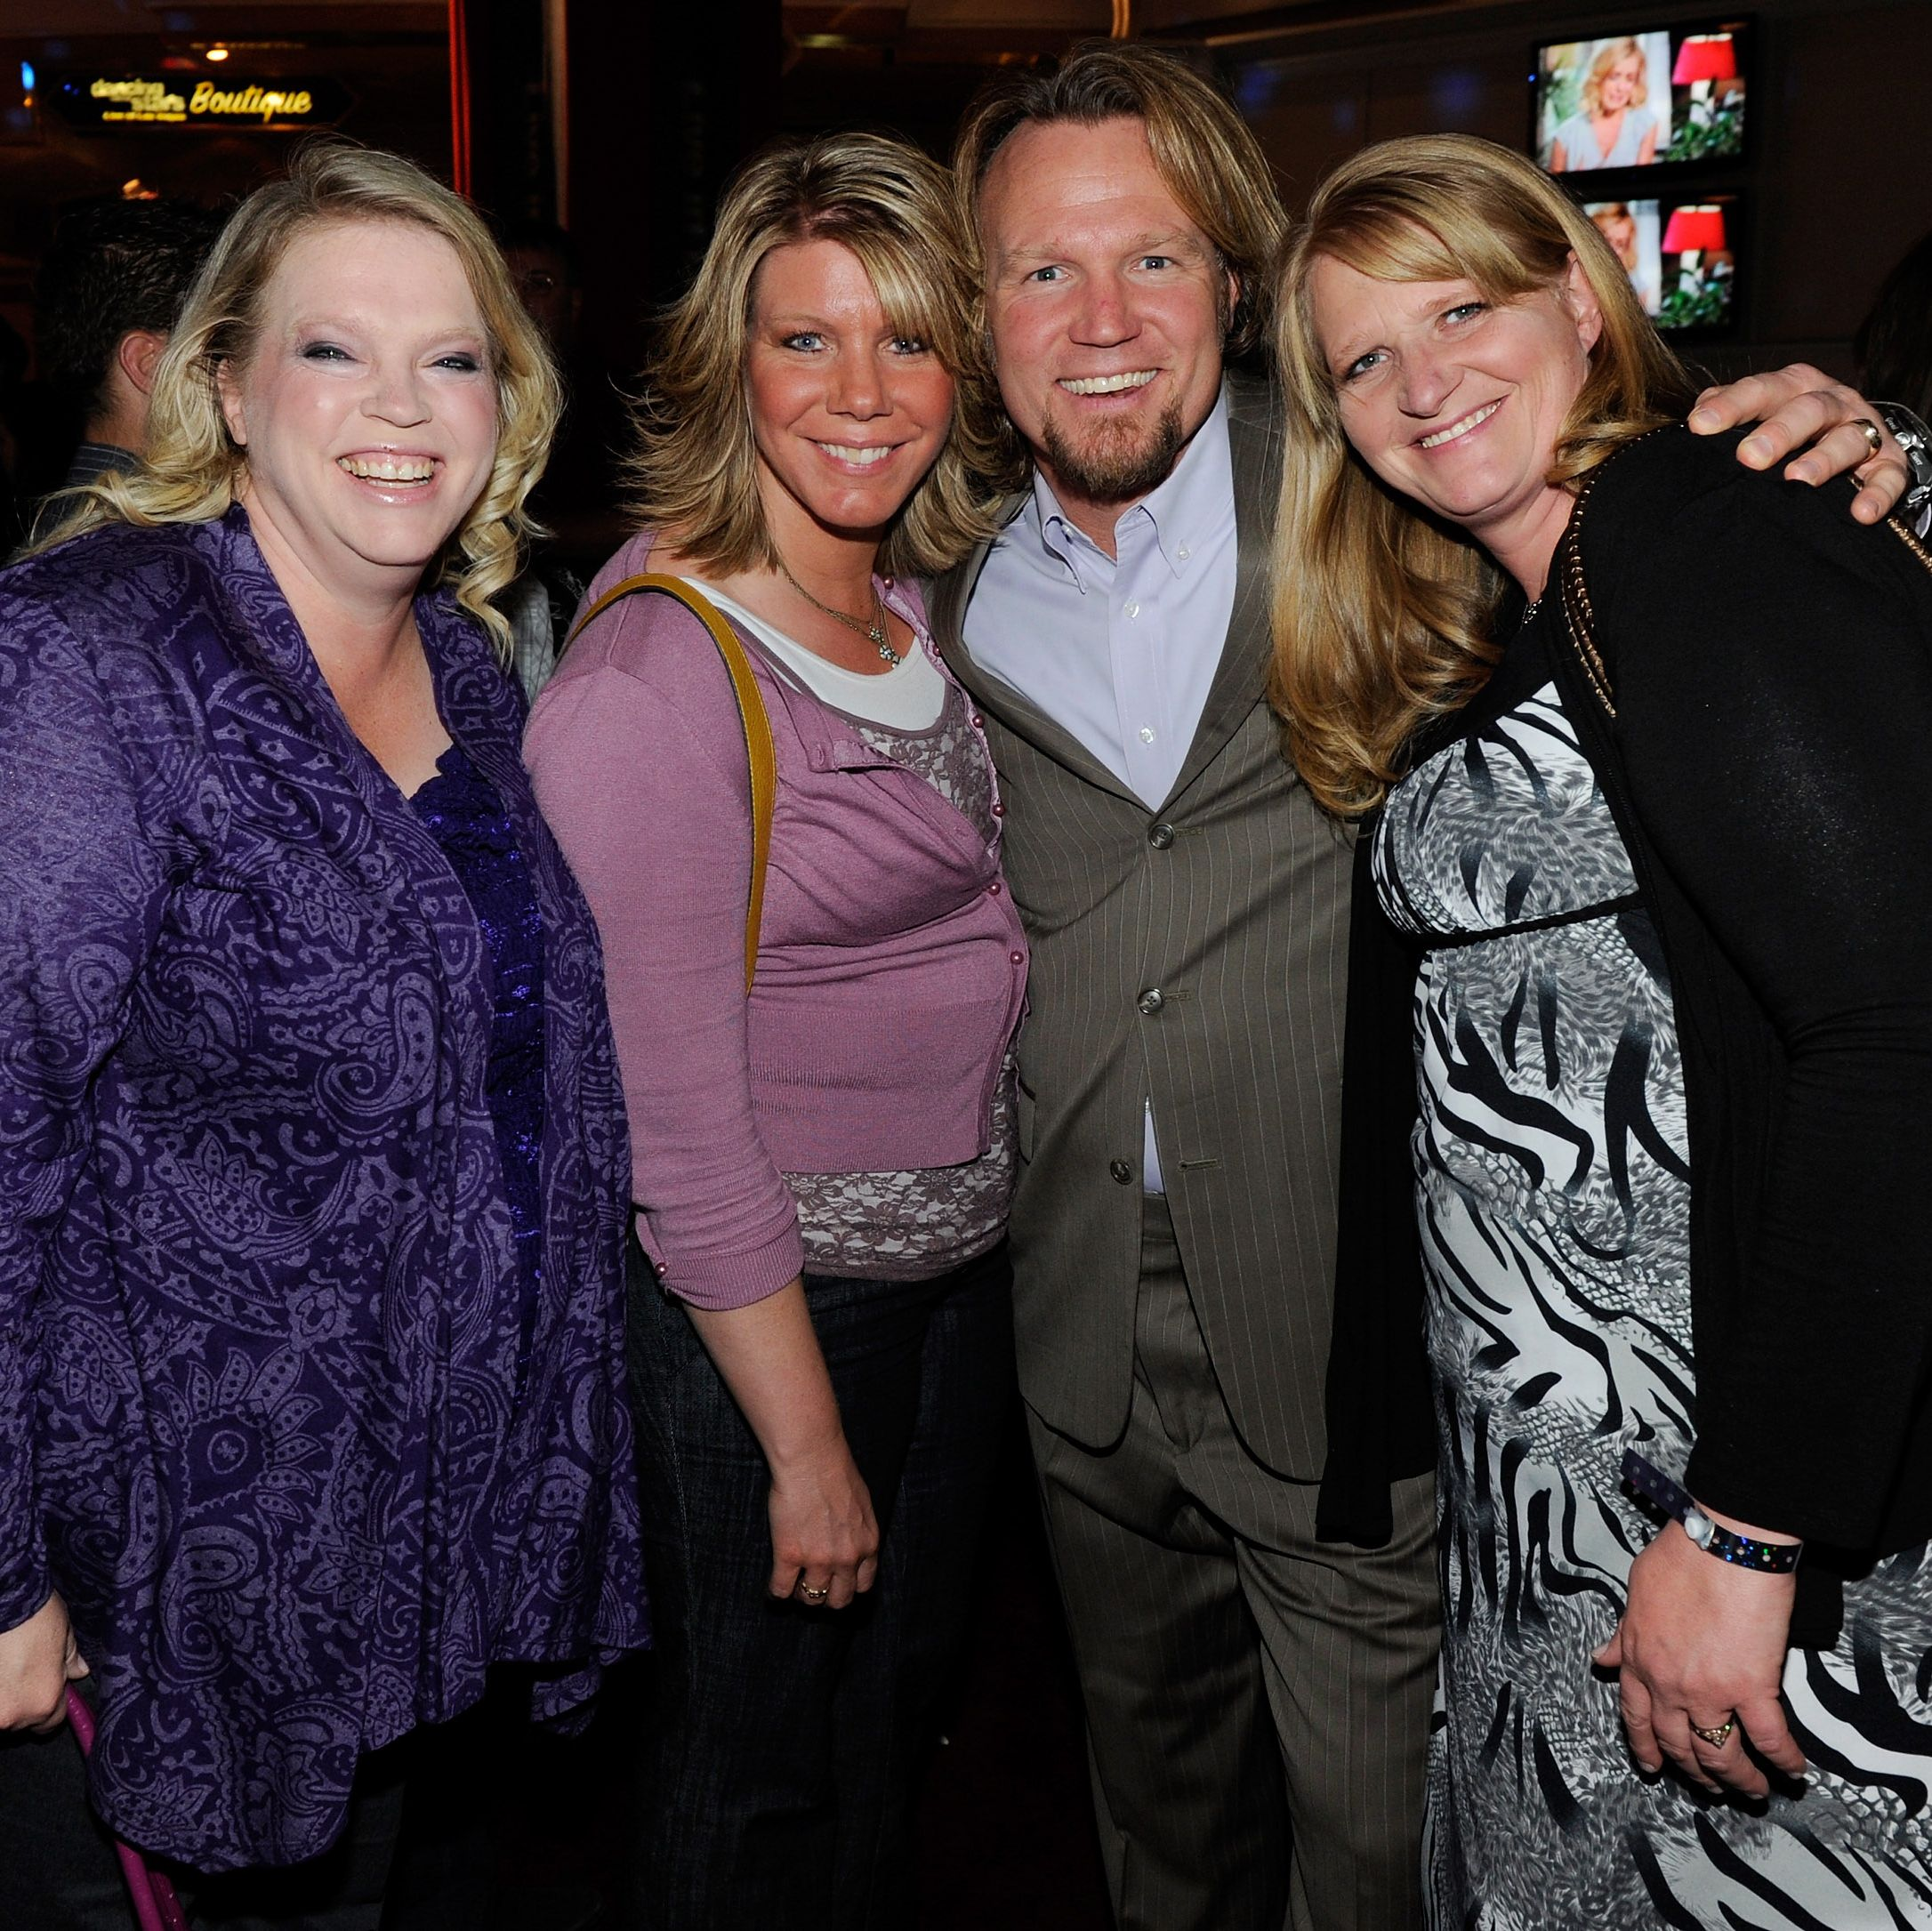 What Does Kody Brown From 'Sister Wives' Do for a Living?